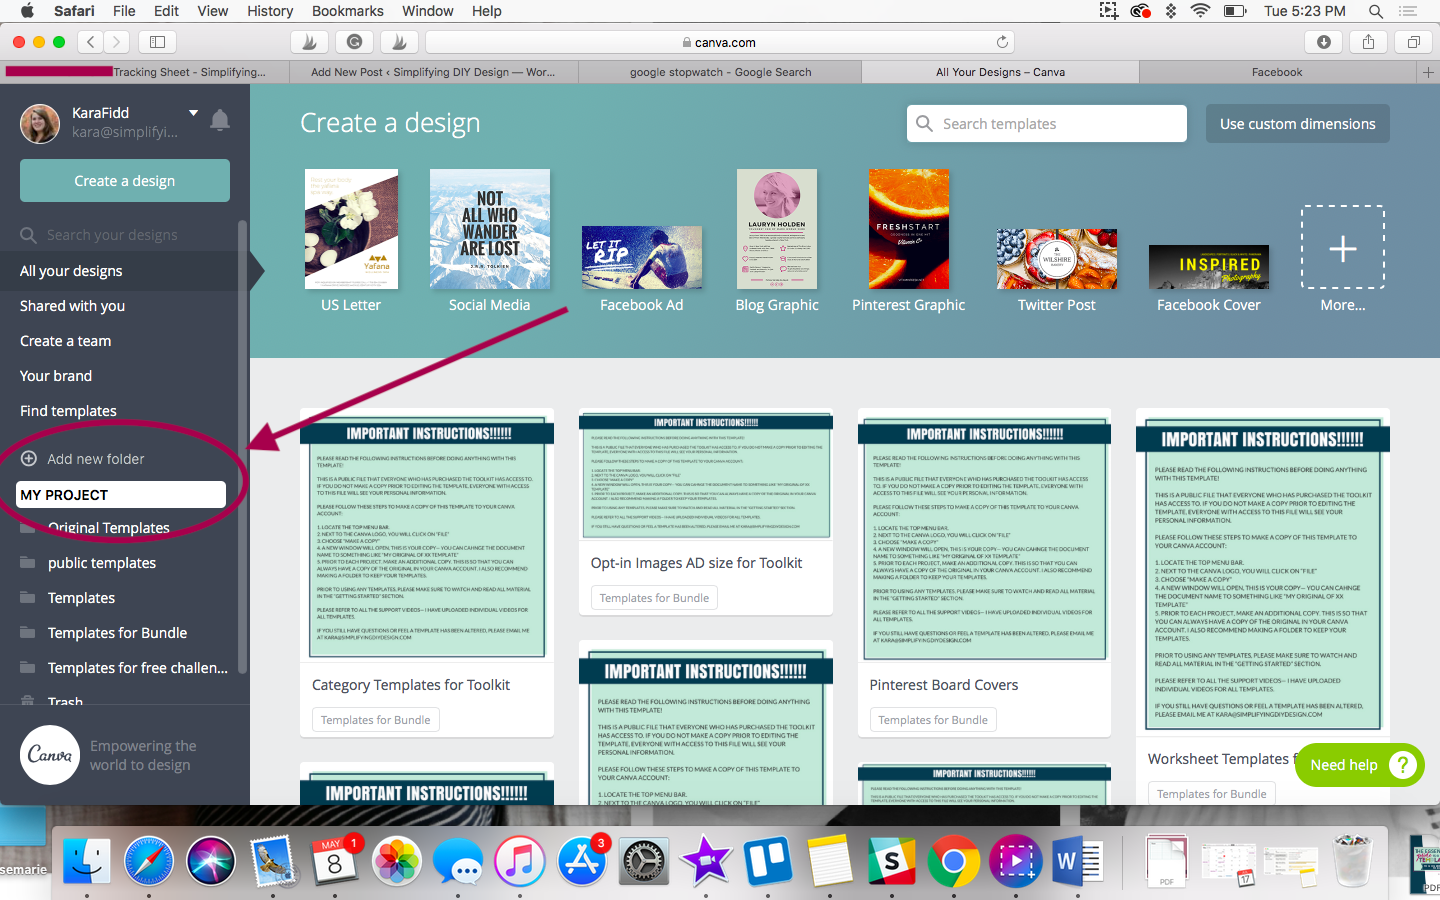 Canva Shortcuts | How to Design Faster Using These Must-Know